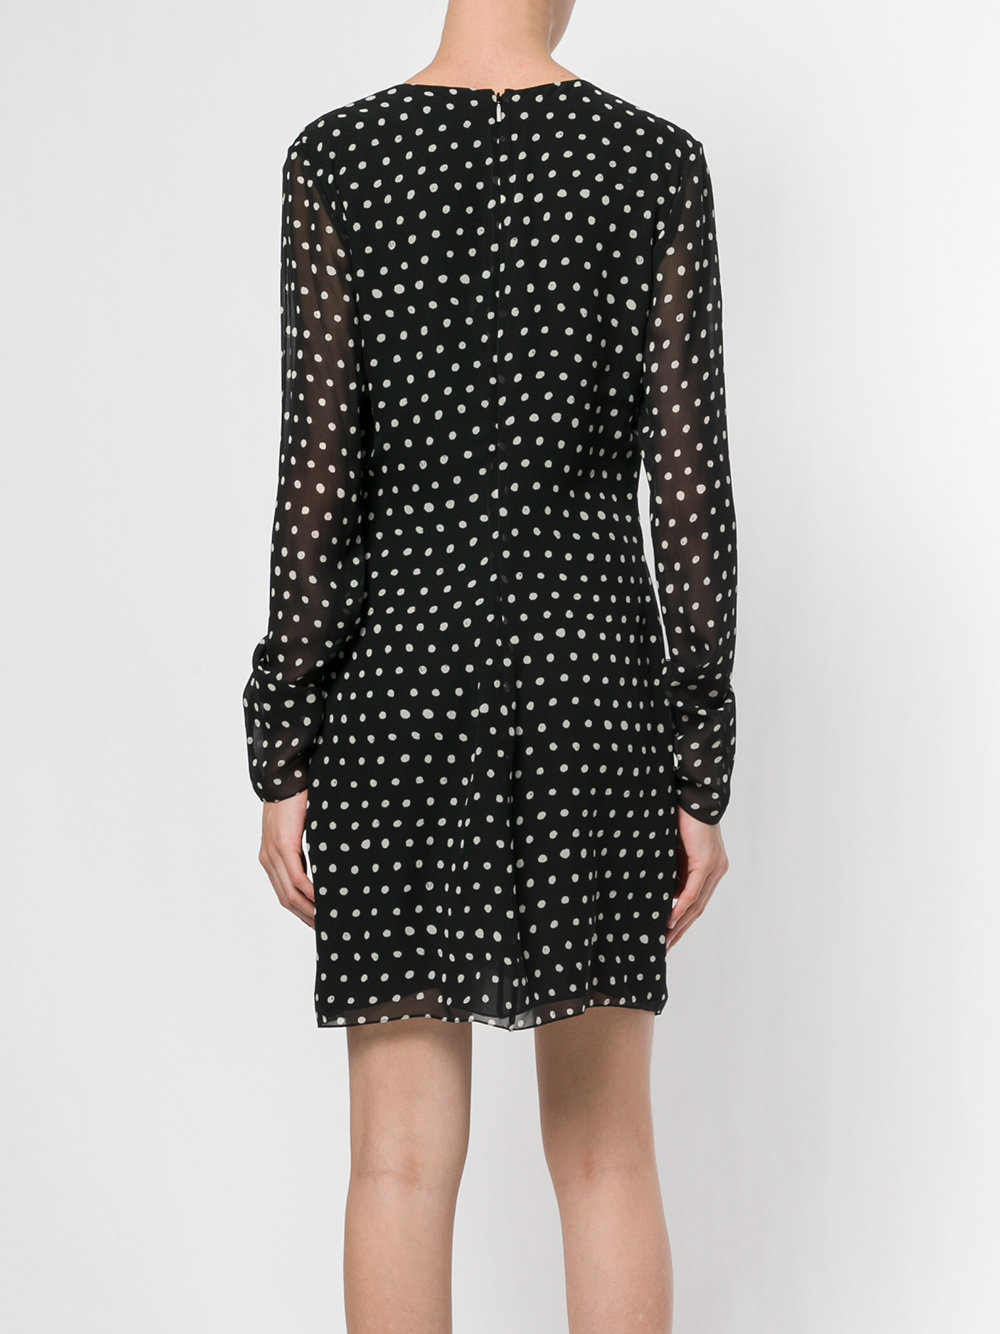 17-18AW WSL1095 POLKA DOT SILK DRESS WITH PLUNGING NECK